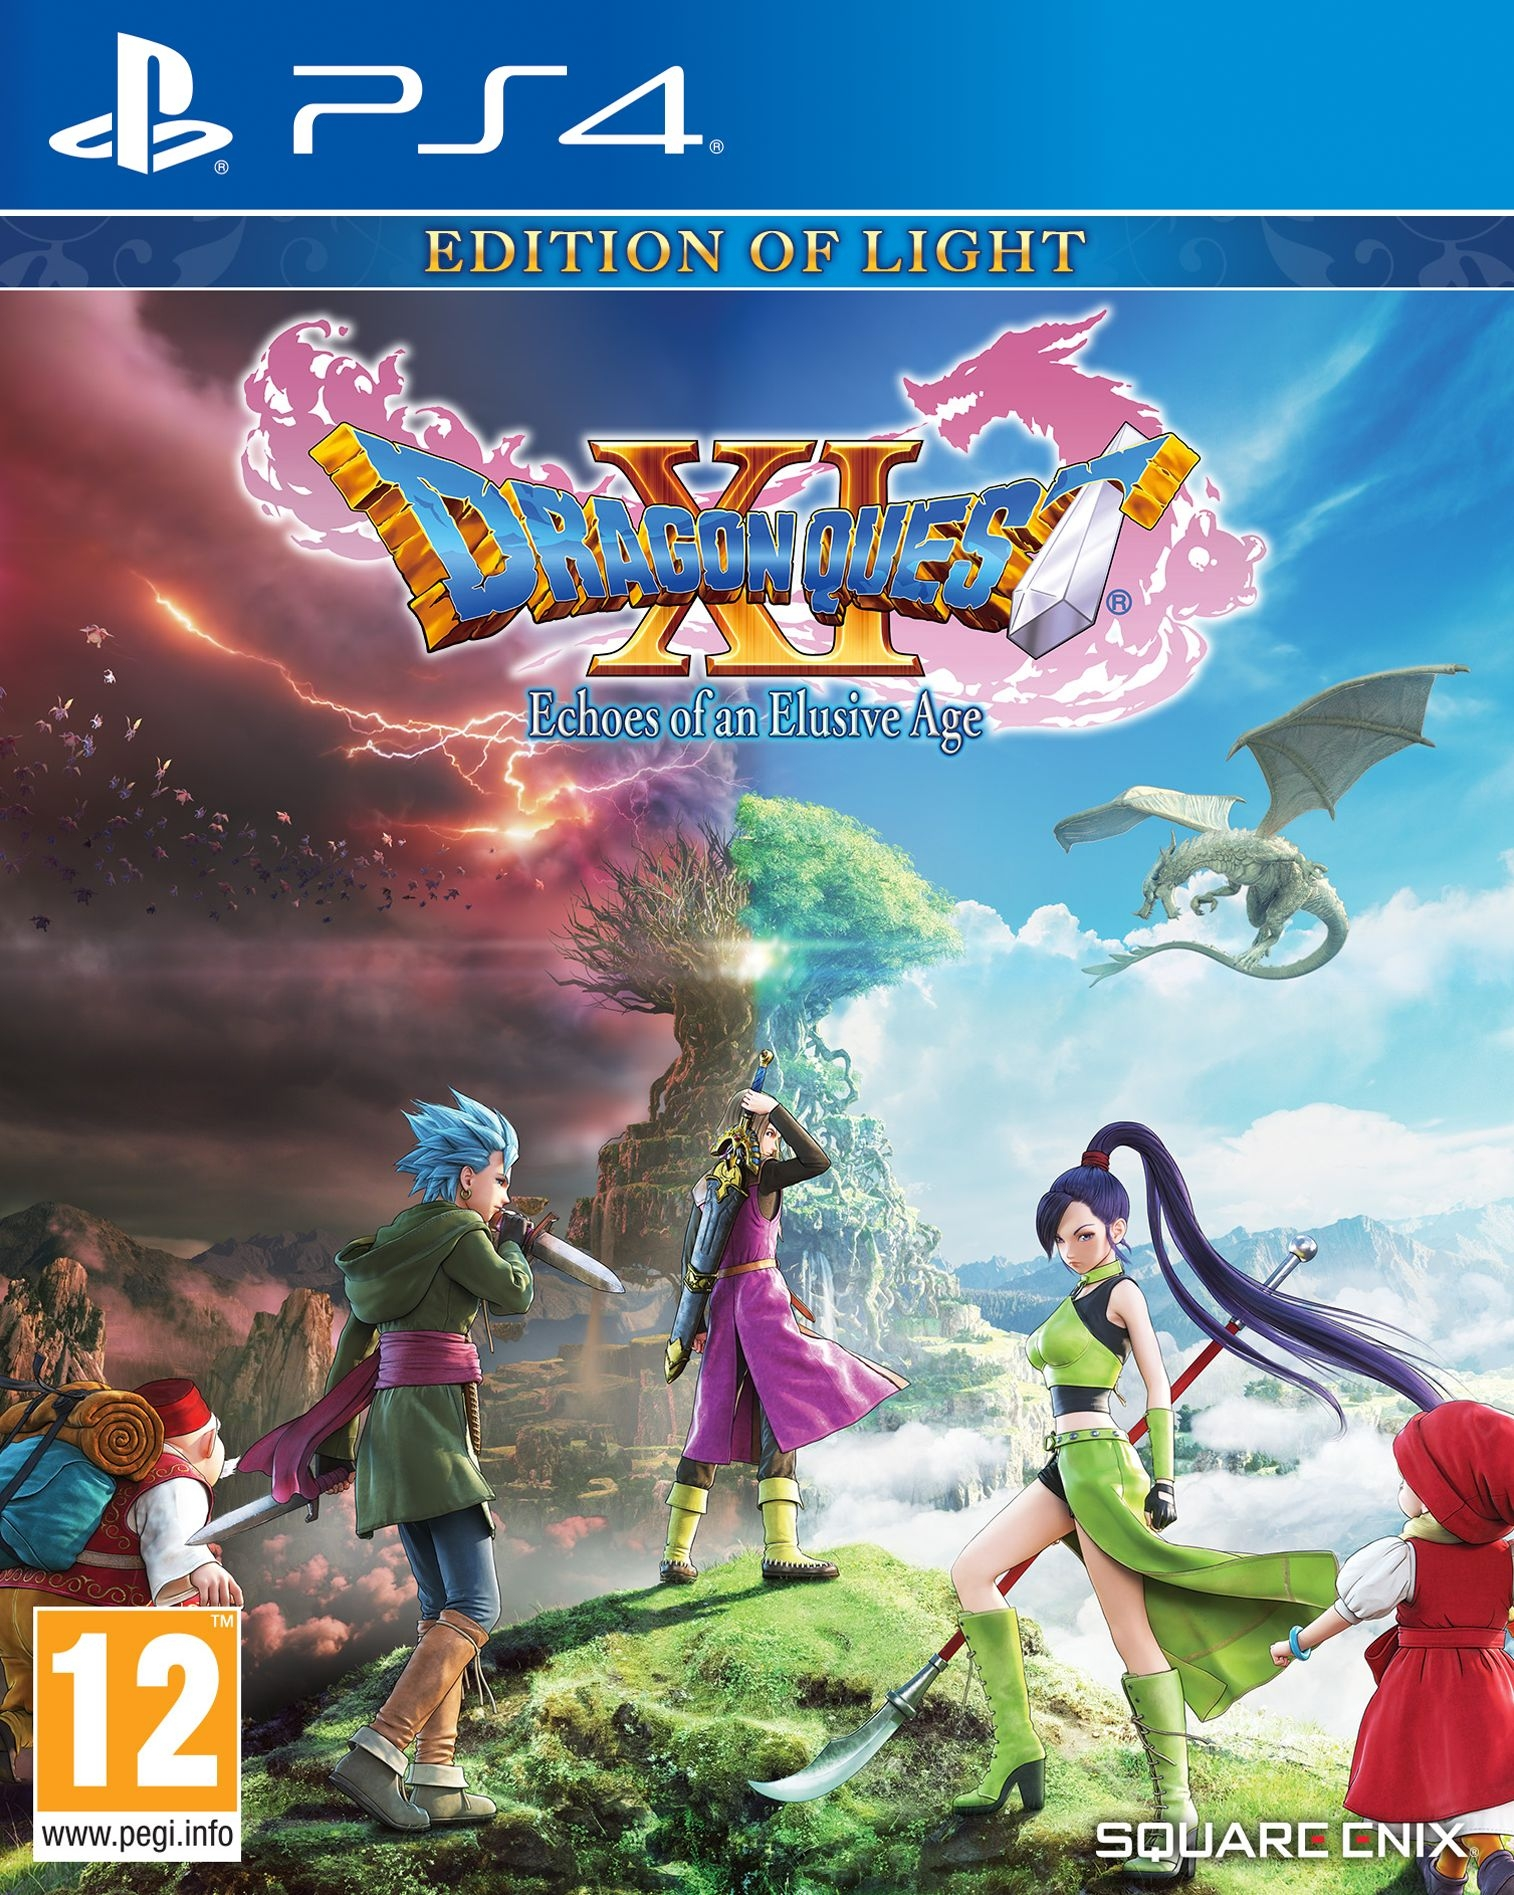 PS4 Dragon Quest XI: Edition of Light